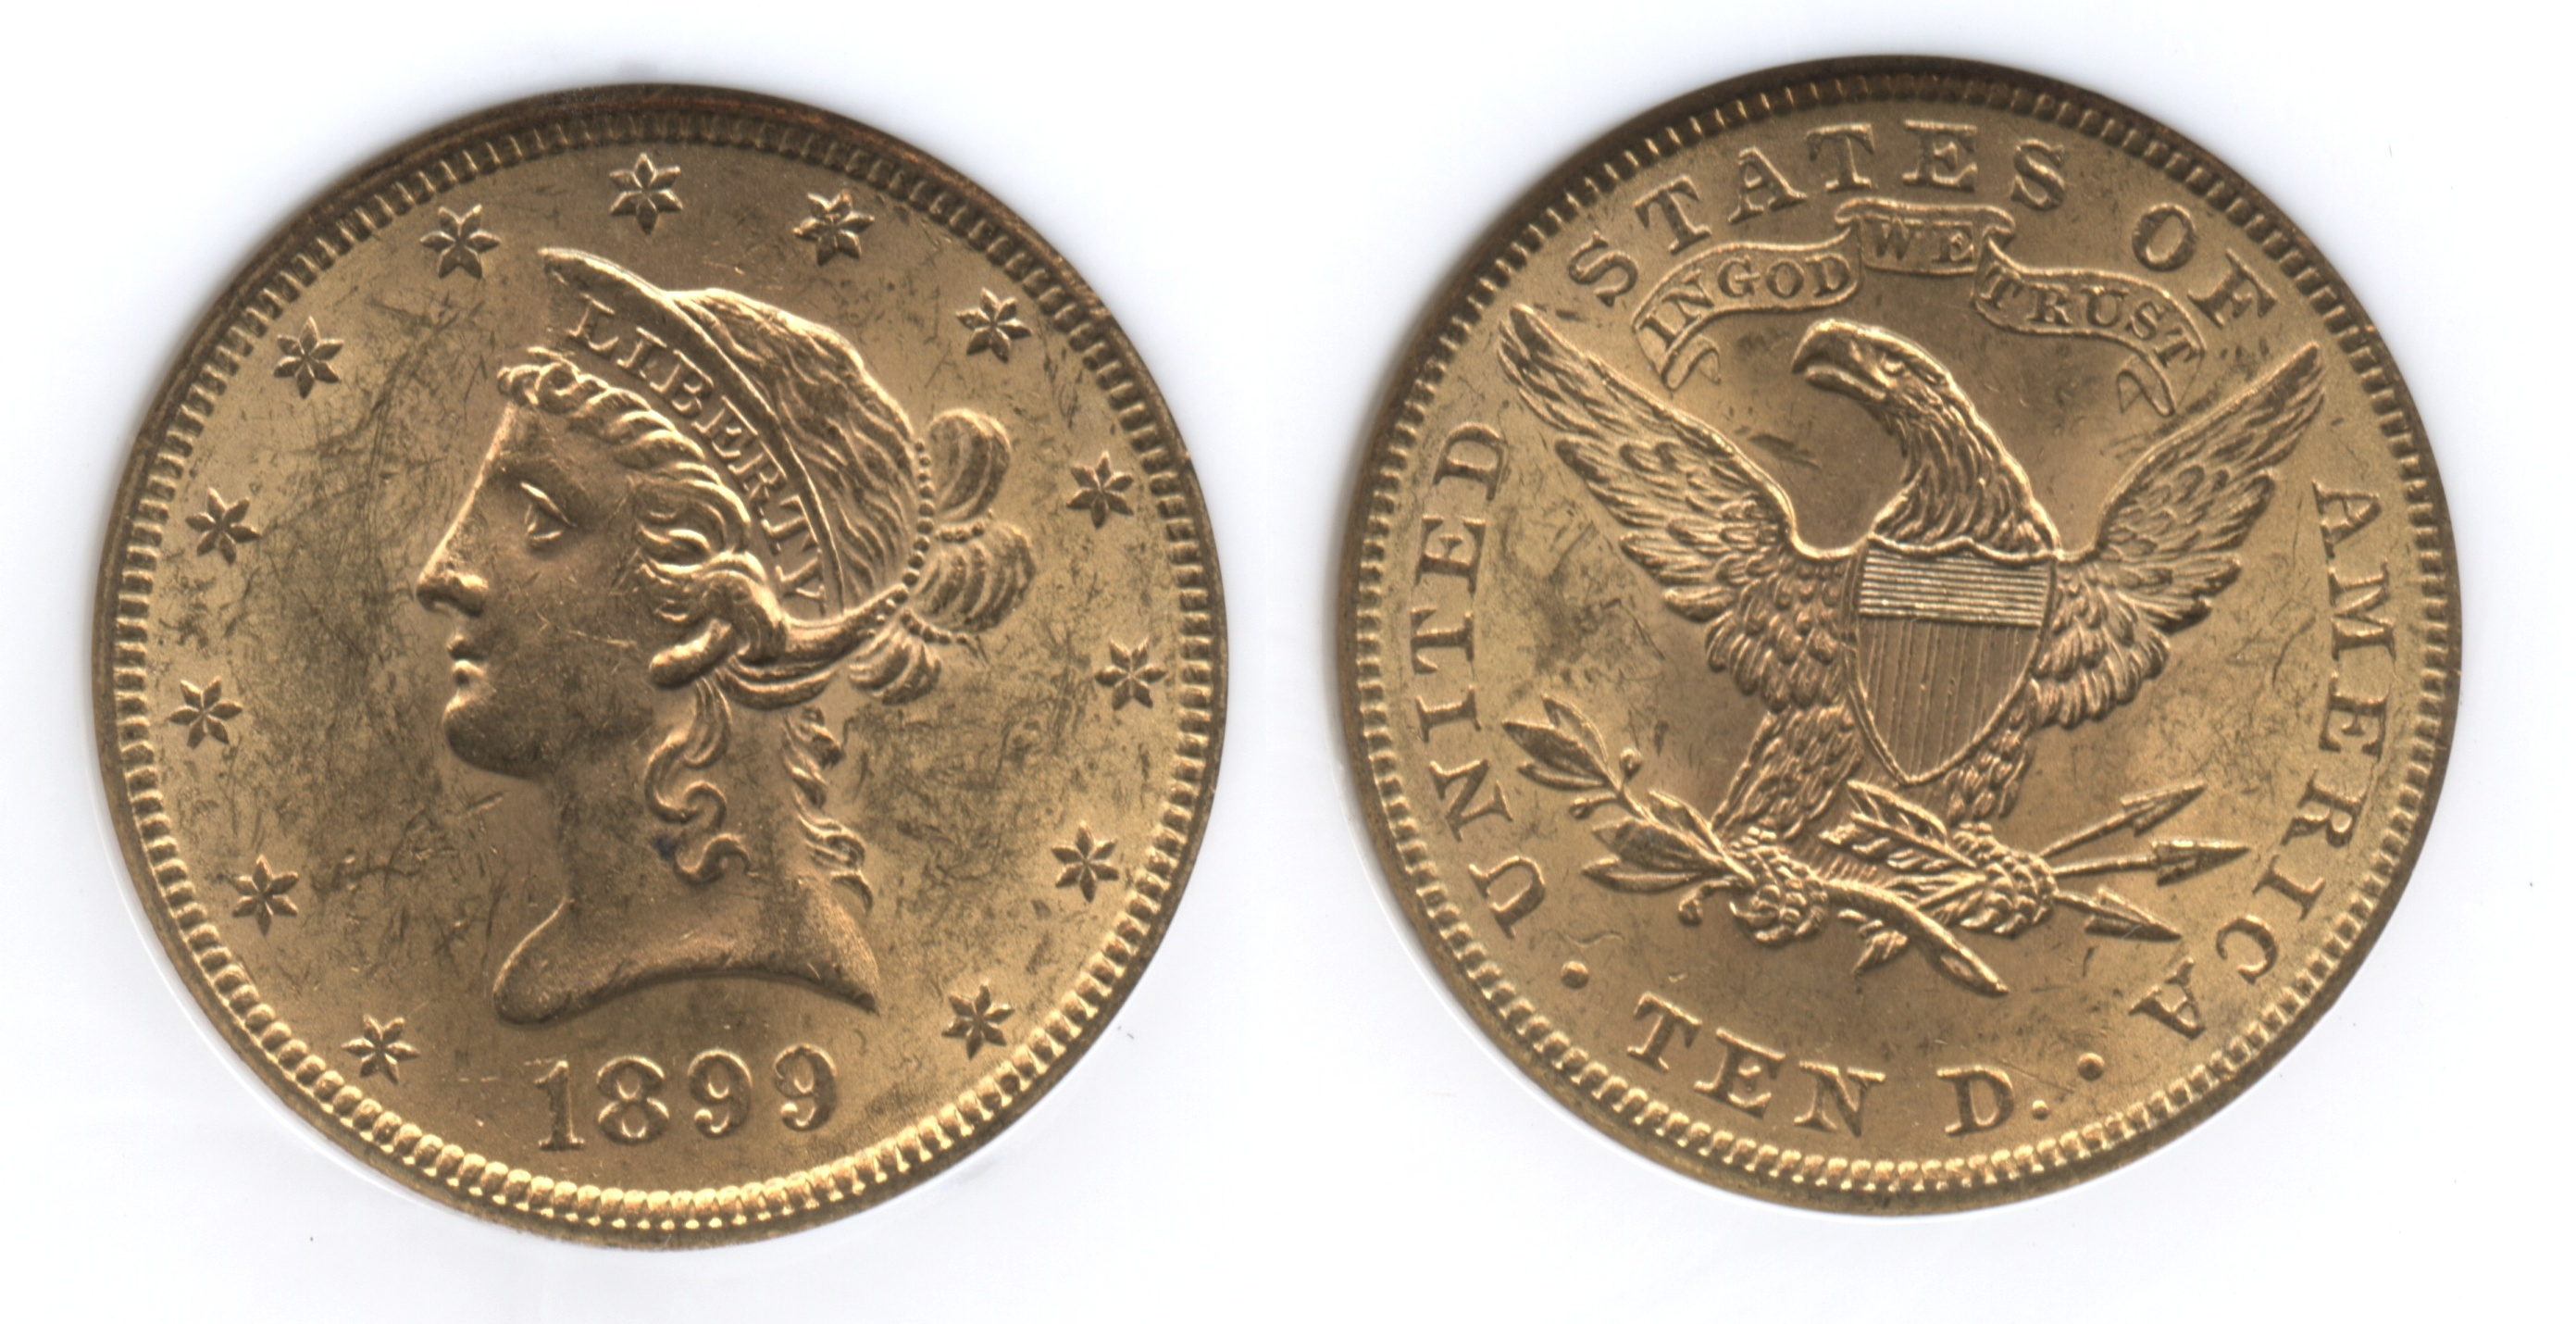 1899 Gold Liberty Head $10.00 Eagle NGC MS-62